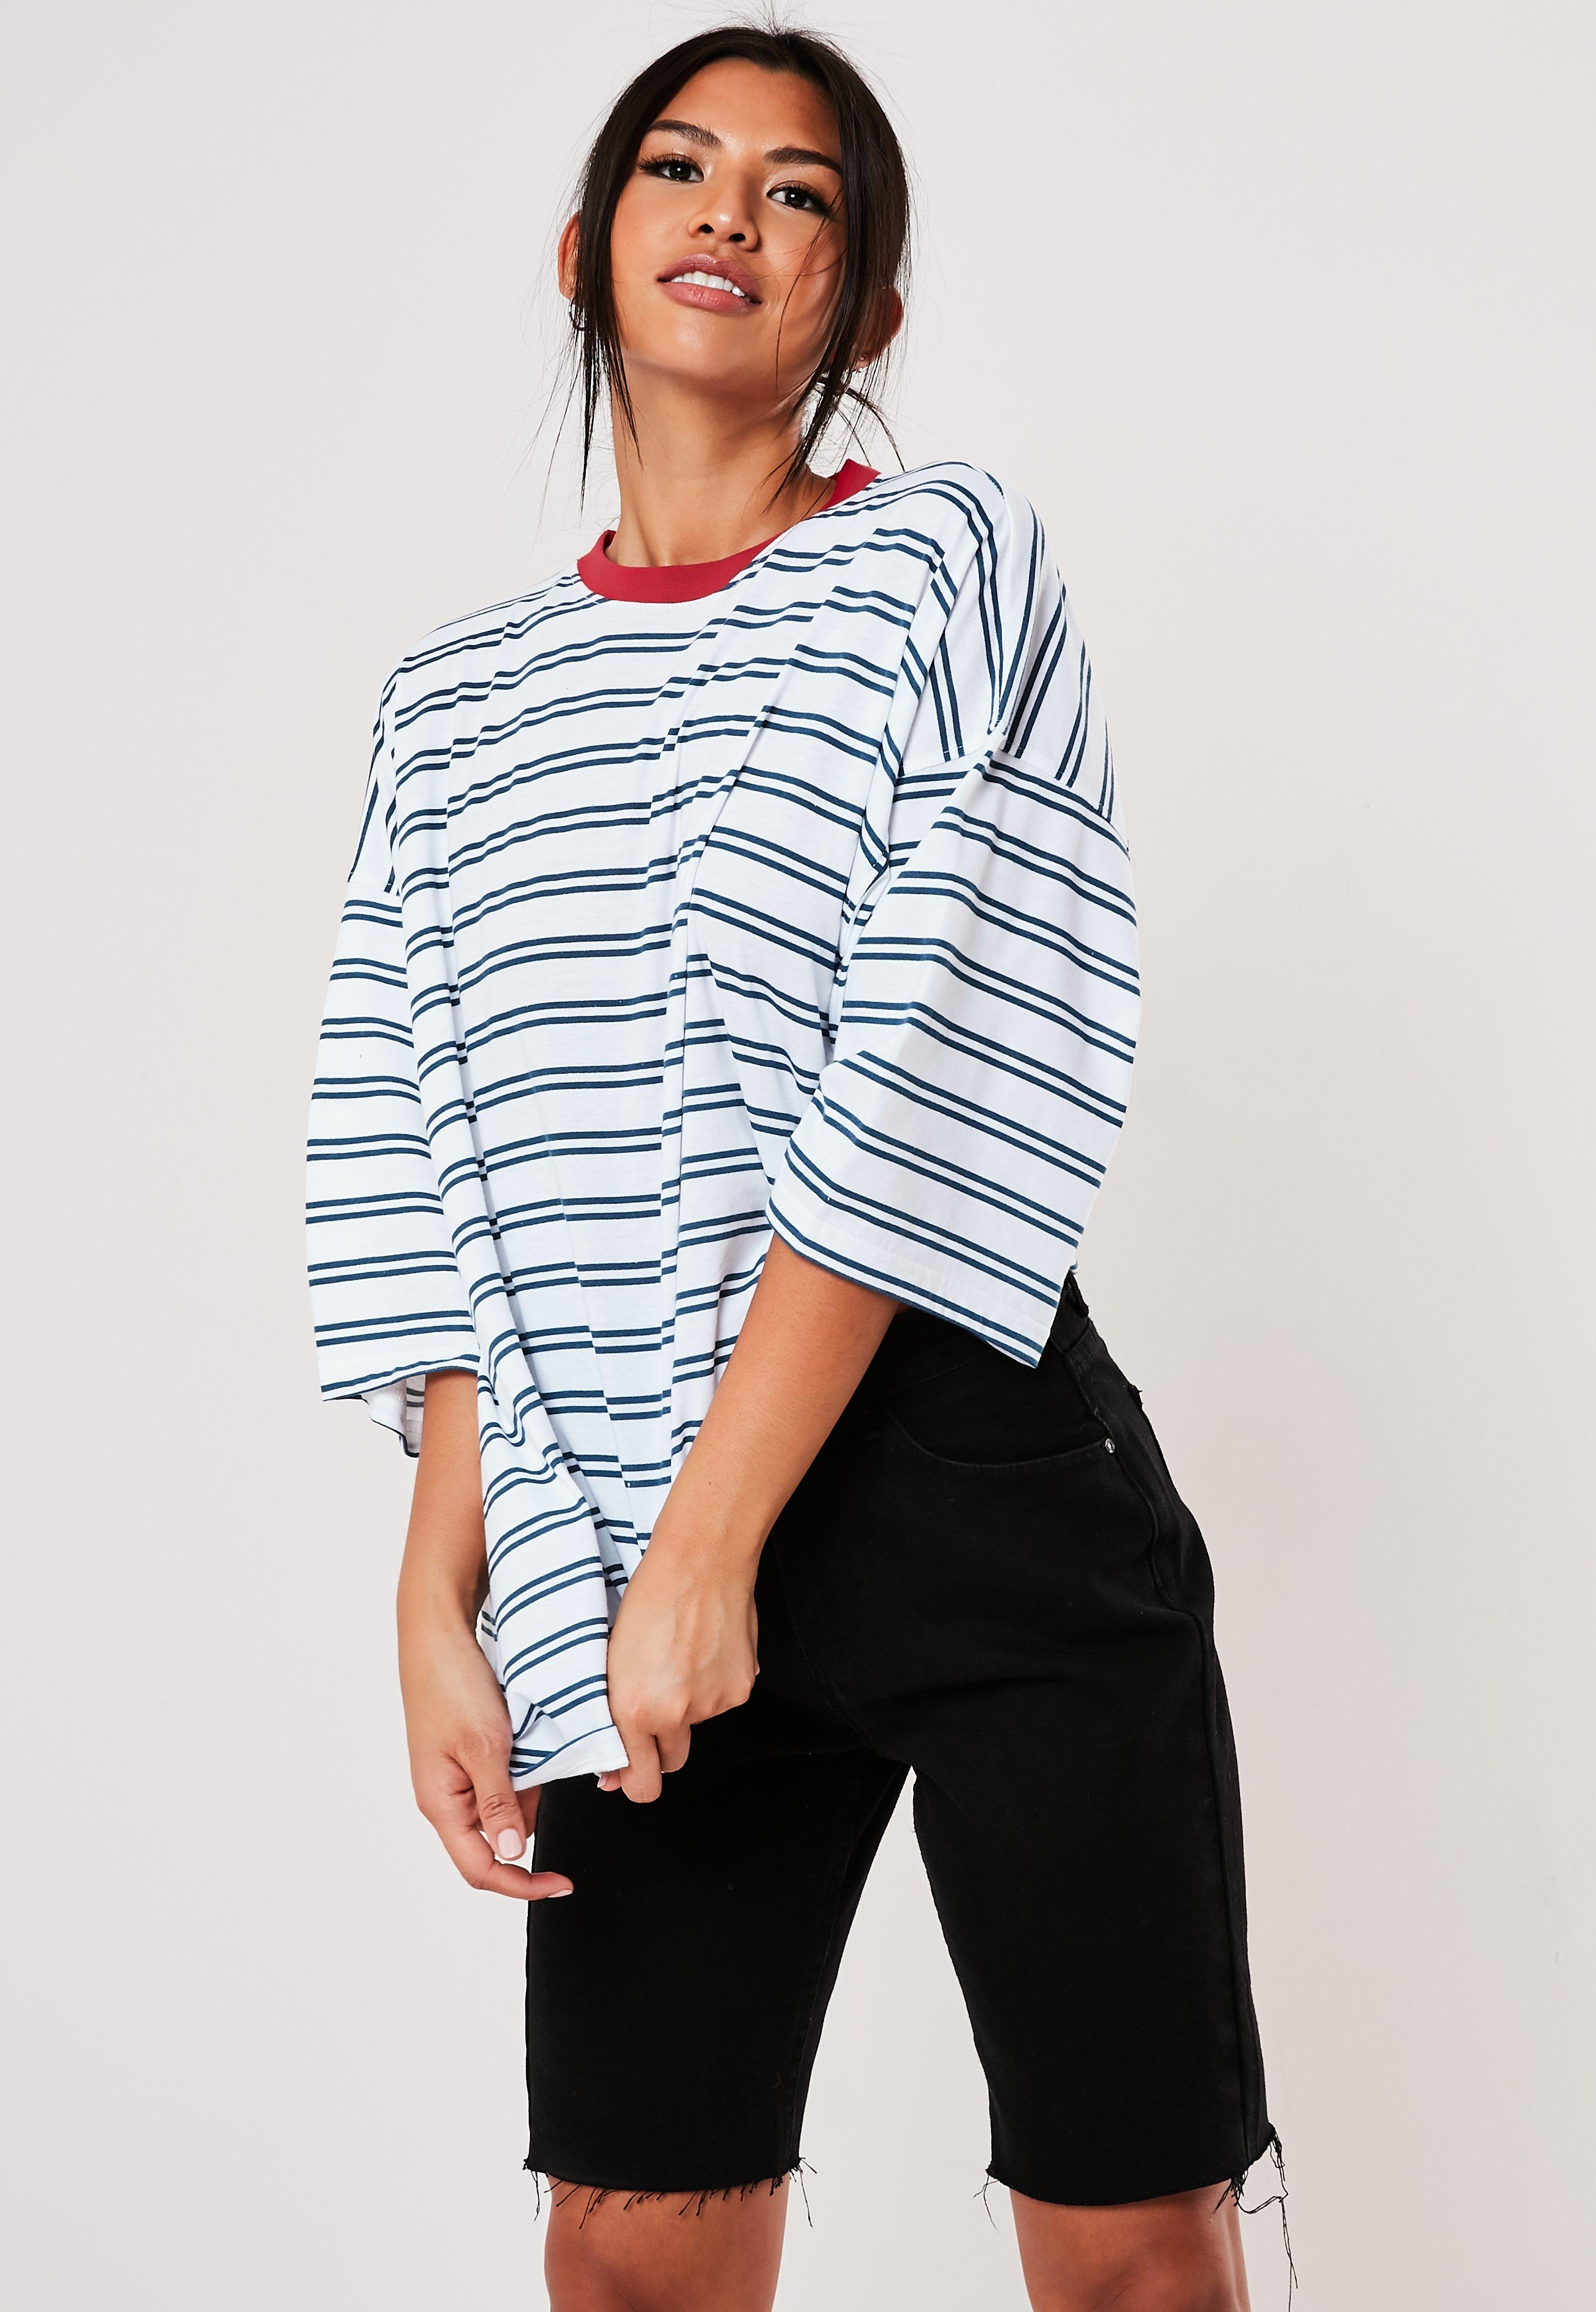 e5b2aea98c91a Oversized Tops | Women's Loose Tops Online - Missguided